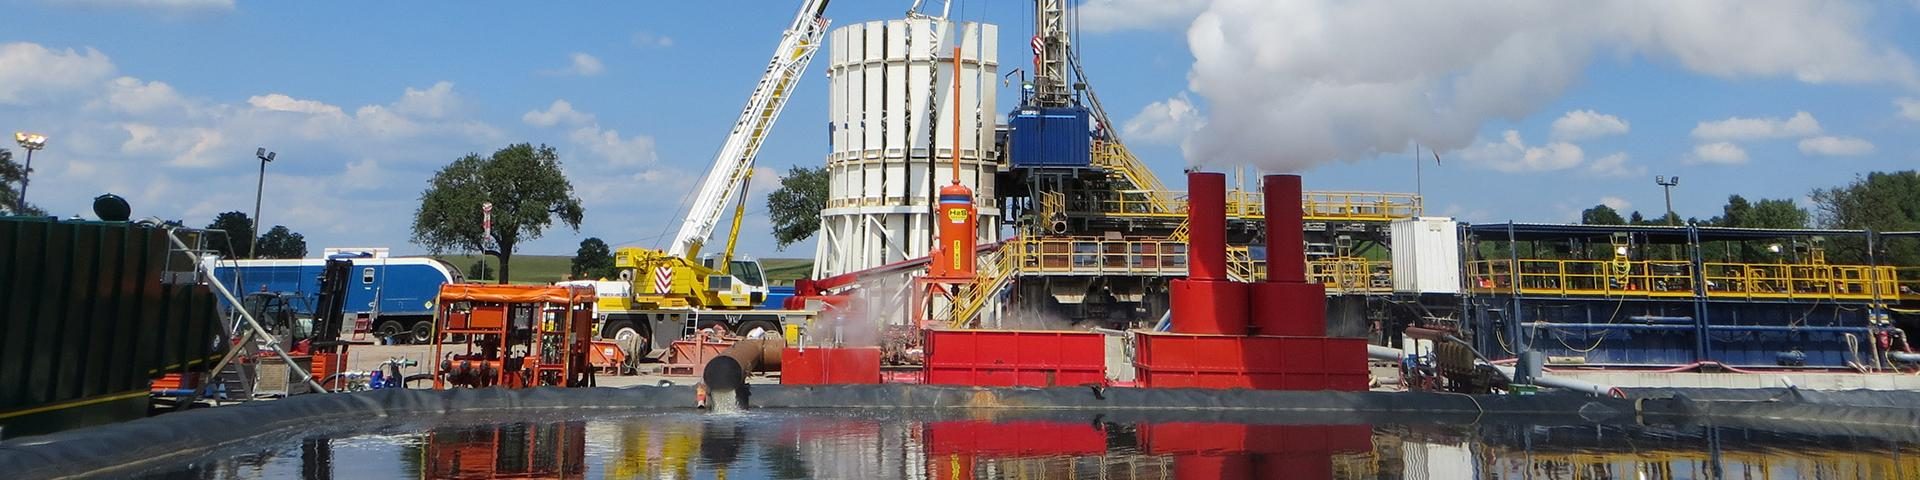 Deep geothermal drilling site, Alsace